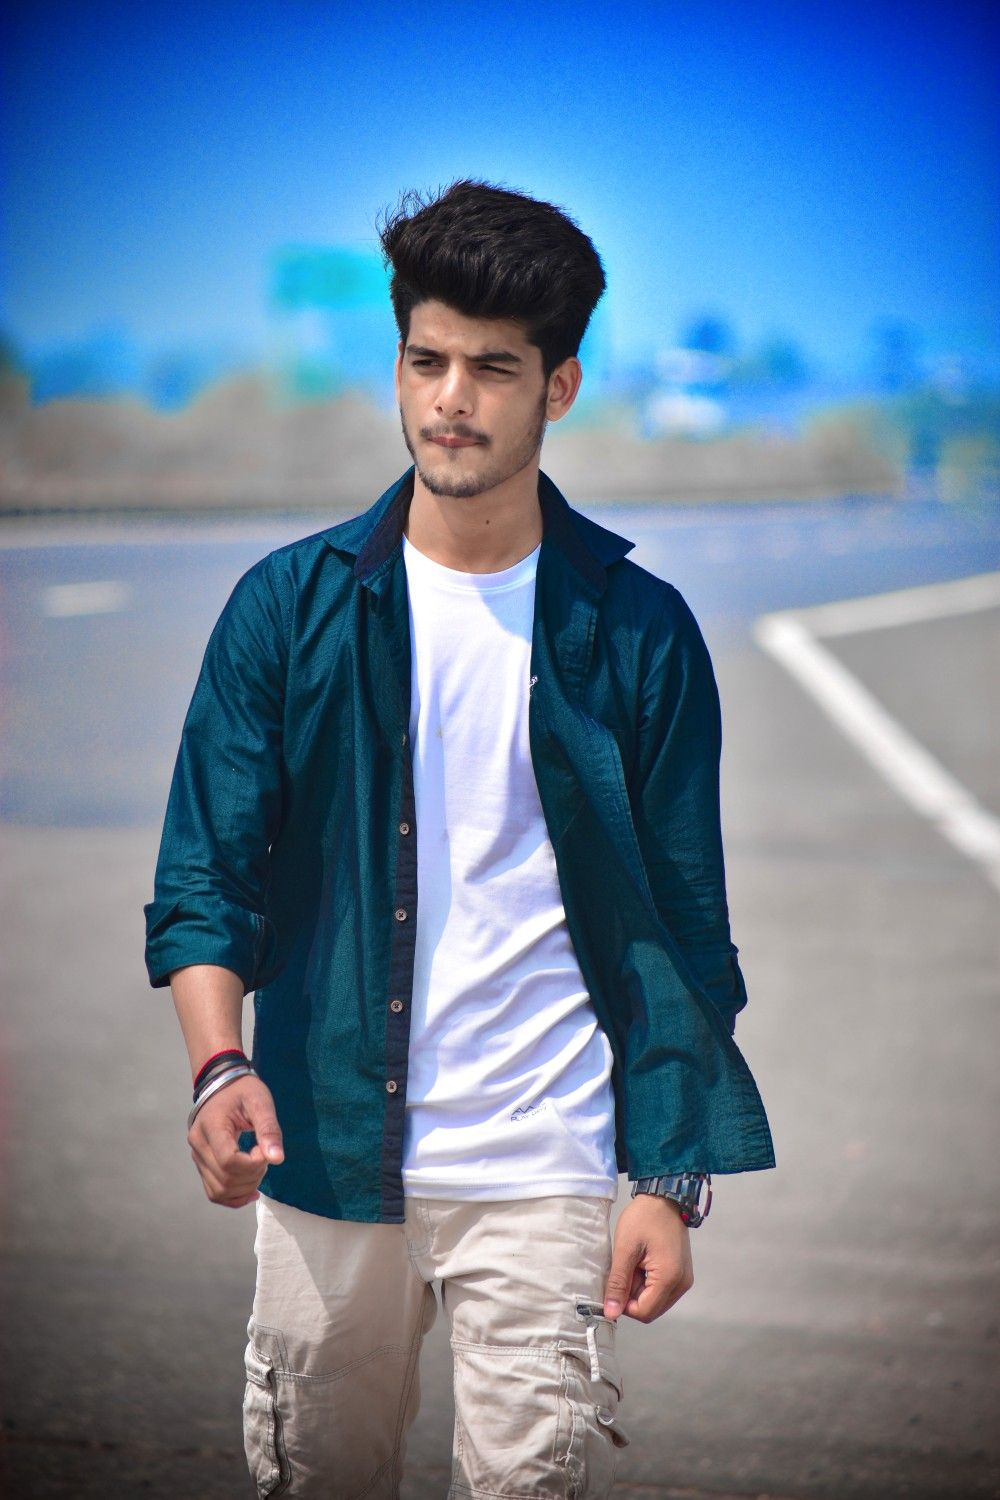 Sumit Chahar Follow Me Fam Photography Poses For Men Mens Photoshoot Poses Studio Background Images